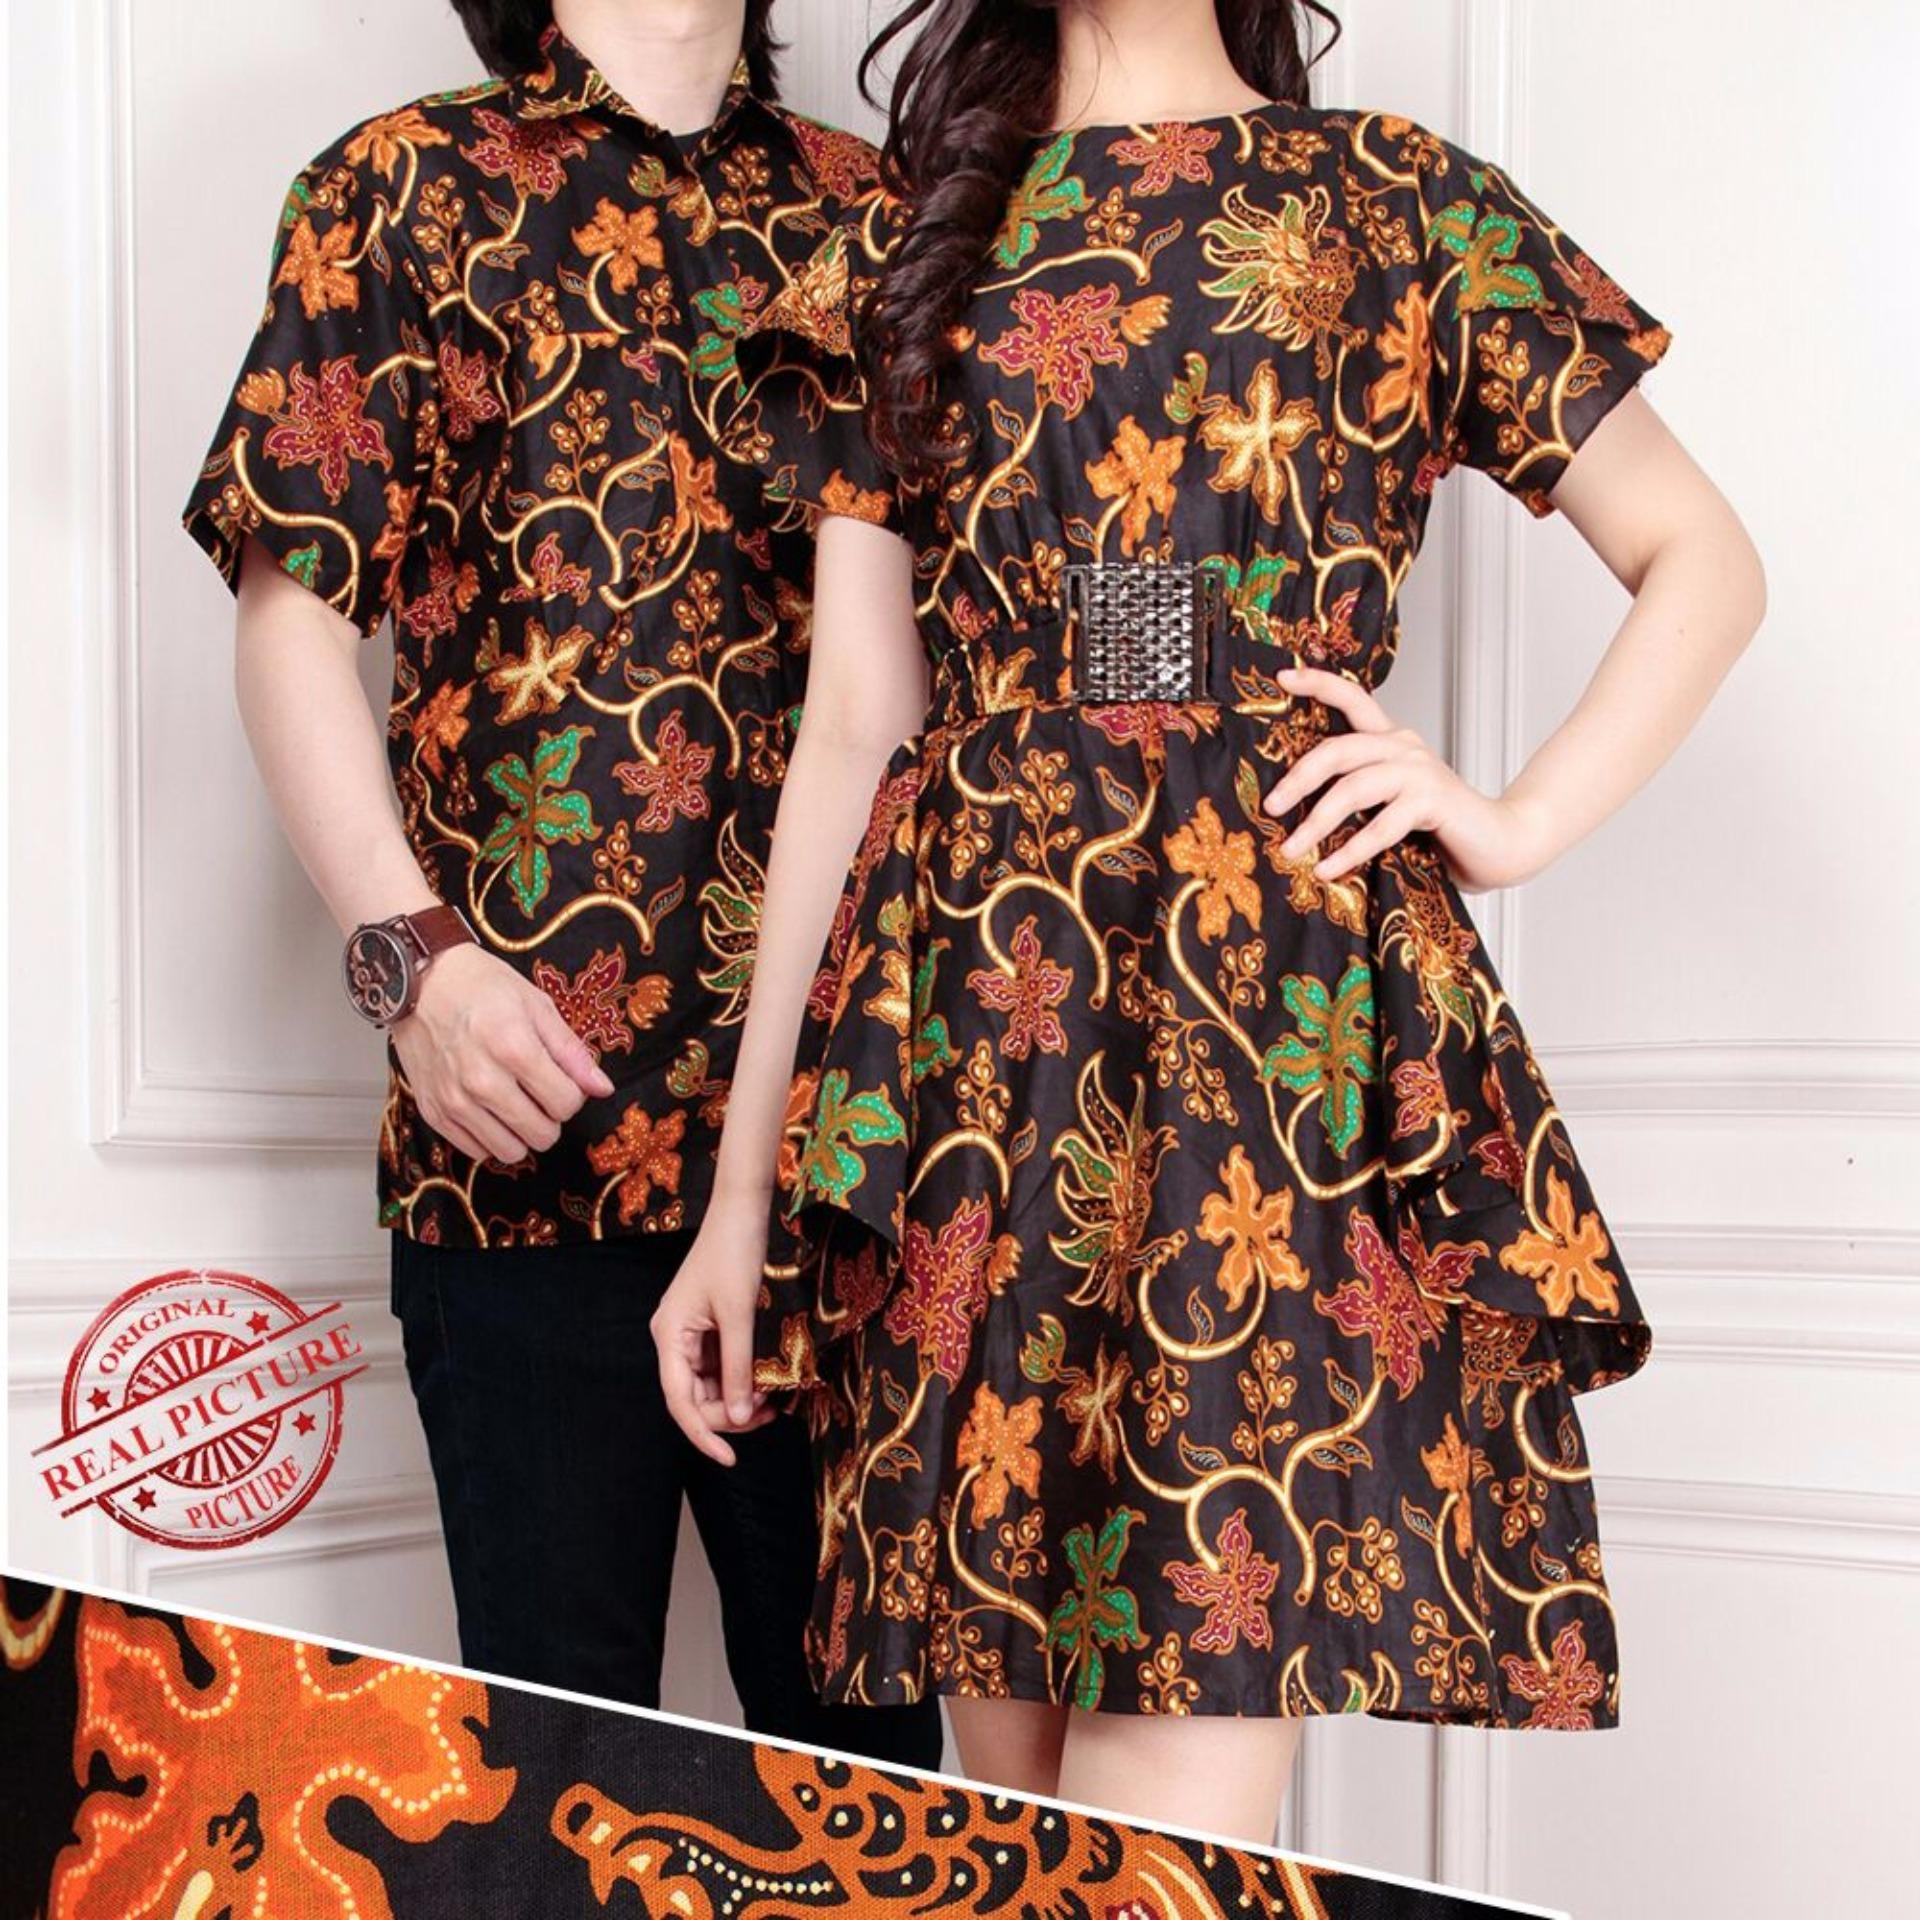 Jual Cepat Cj Collection Couple Batik Dress Maxi Pendek Wanita Mini Dress Dan Atasan Kemeja Pria Shirt Zellany